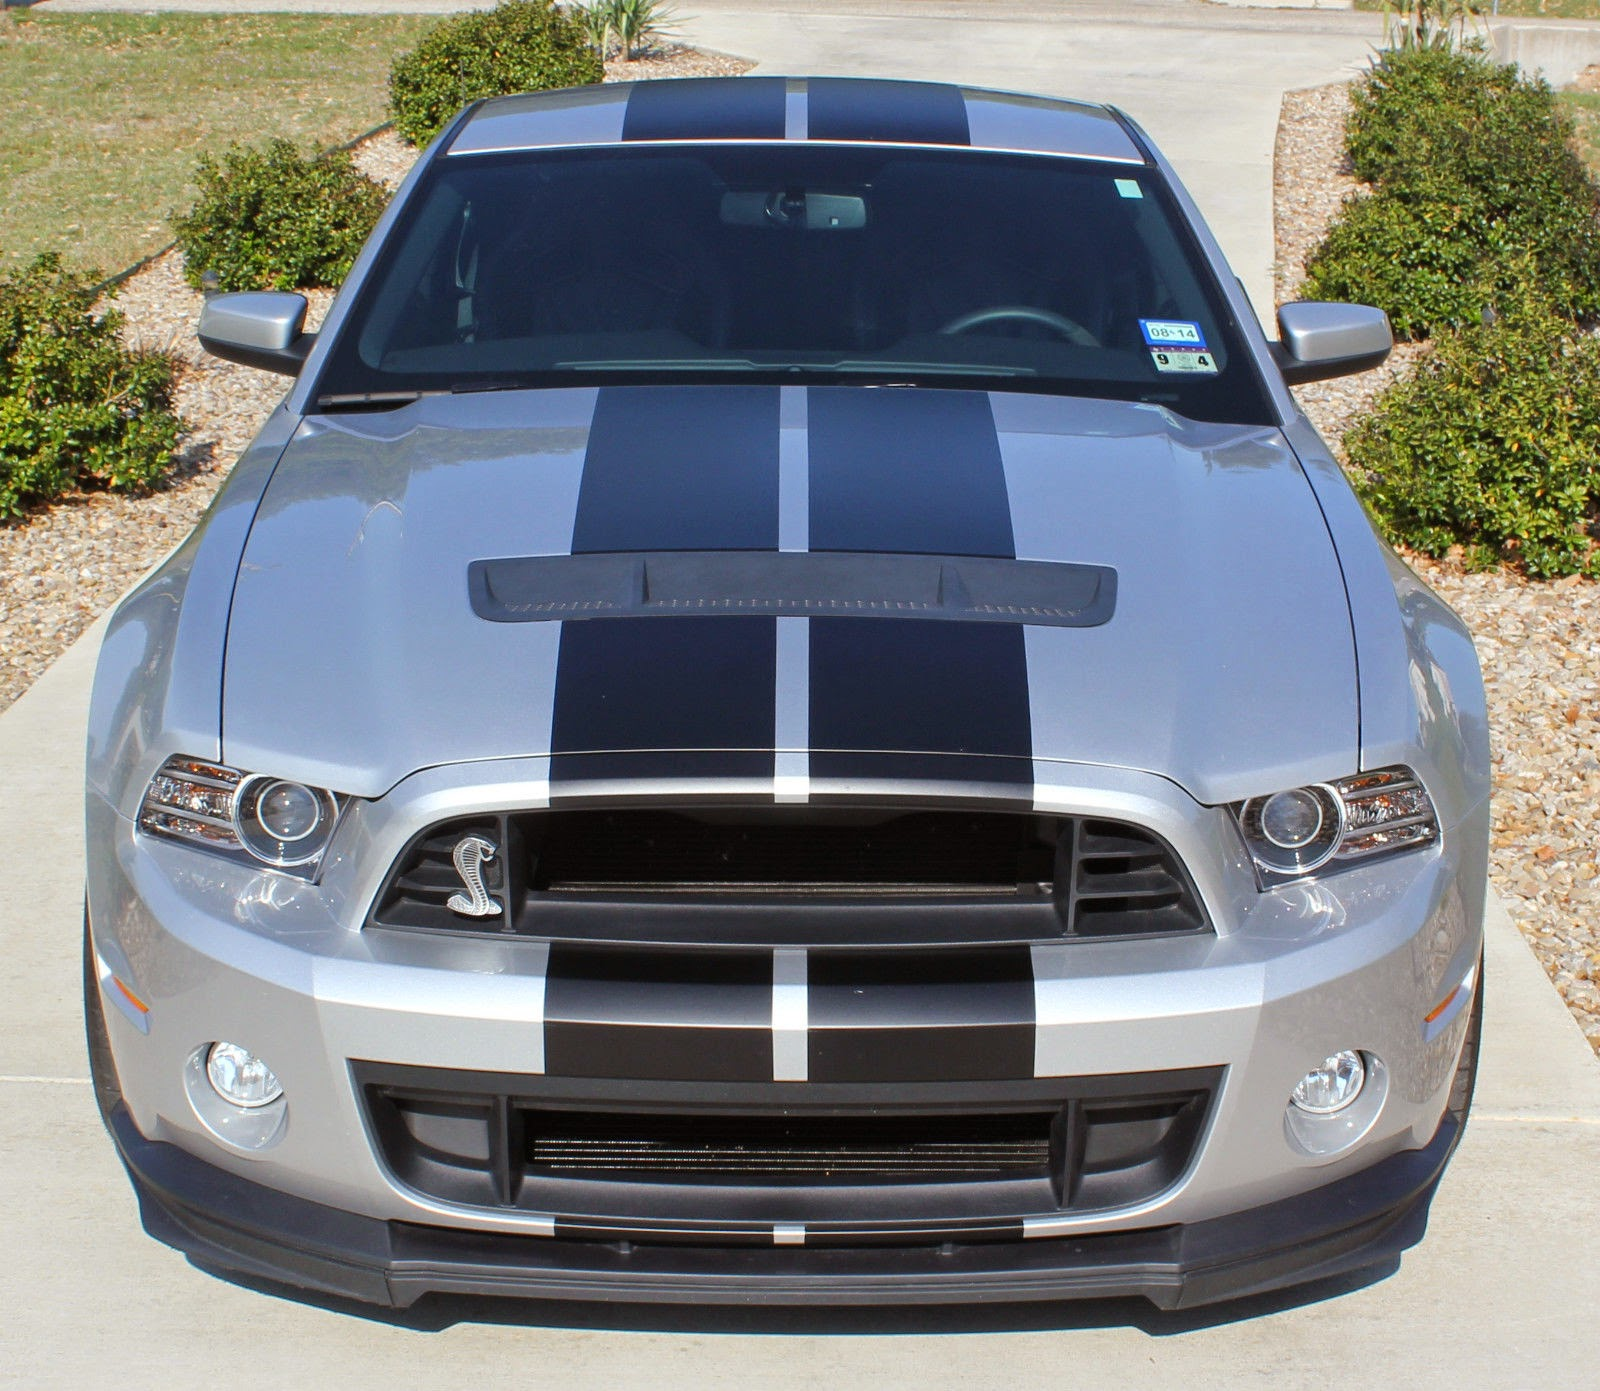 Supercharged Mustang For Sale In Texas: 2013 Ford Mustang Shelby GT500